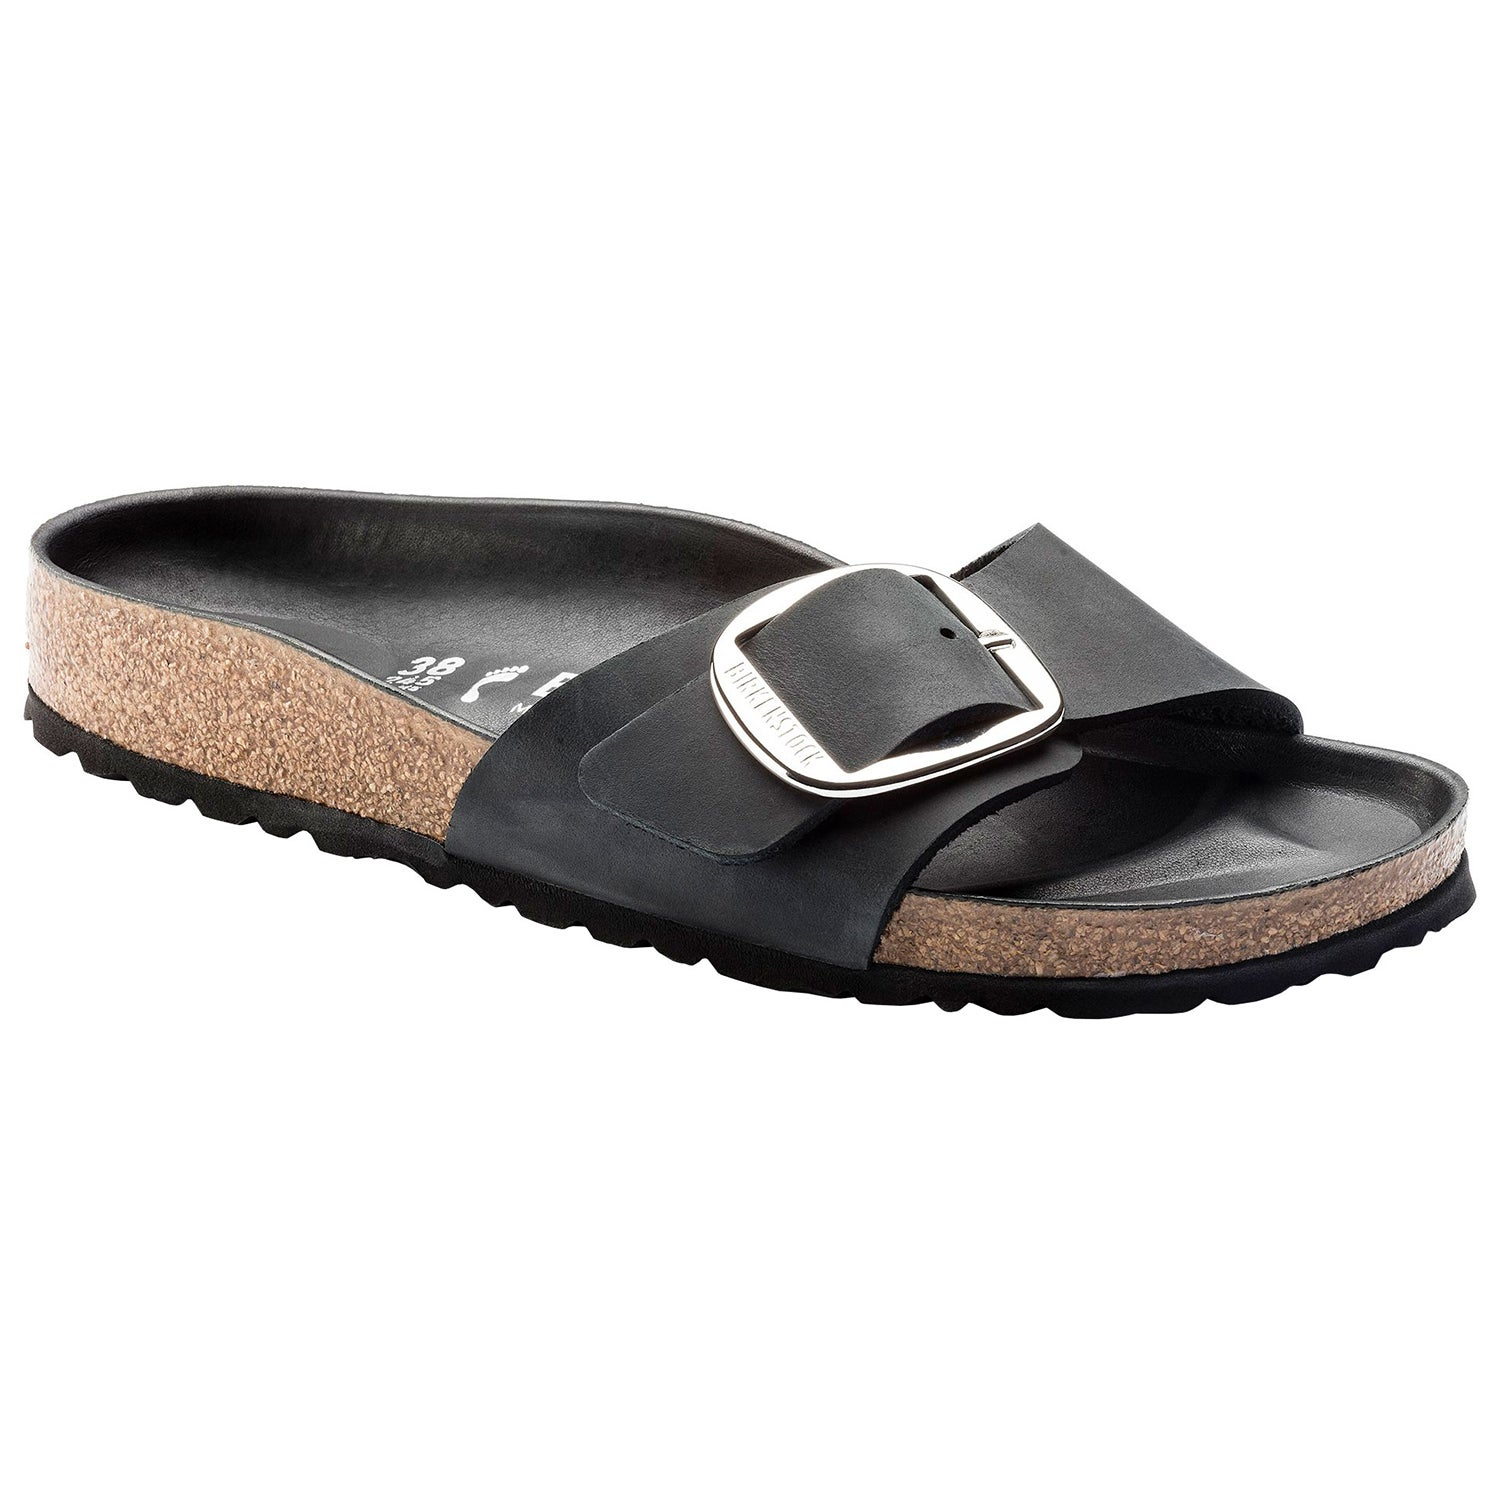 Sandálias Birkenstock Madrid Big Buckle Narrow